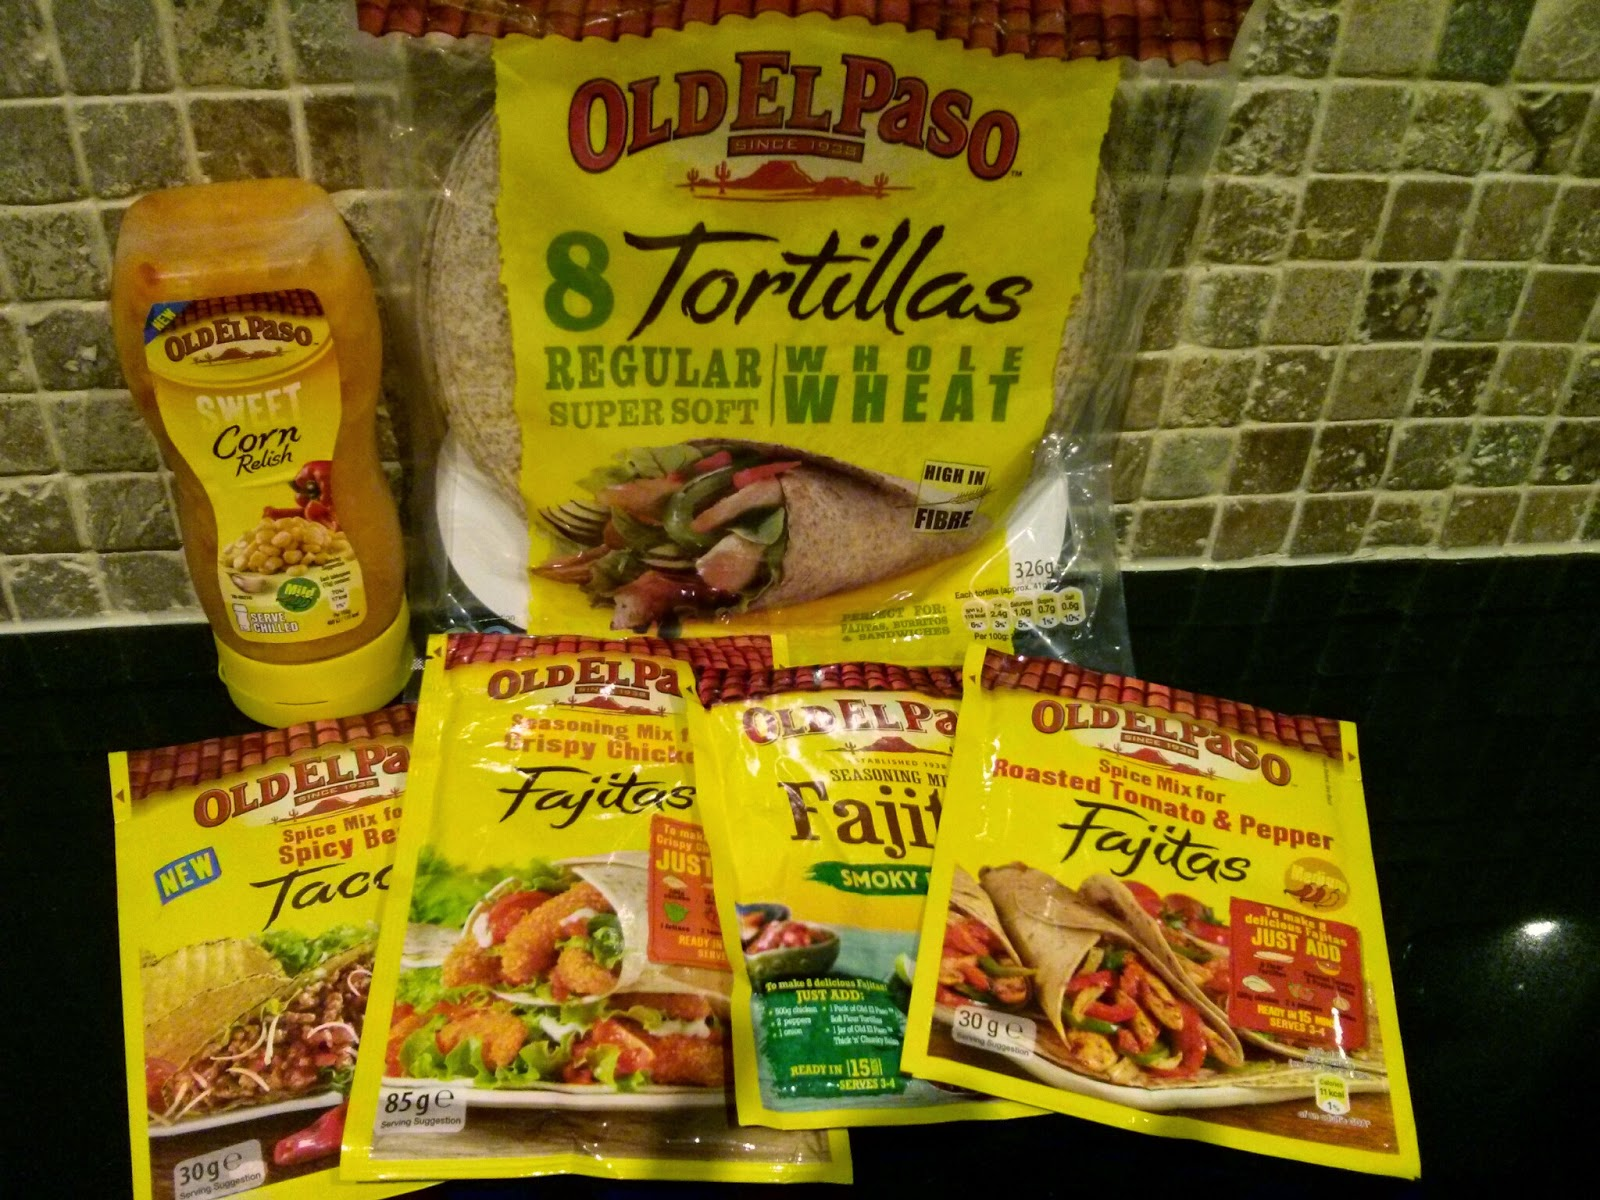 Old EL Paso selection